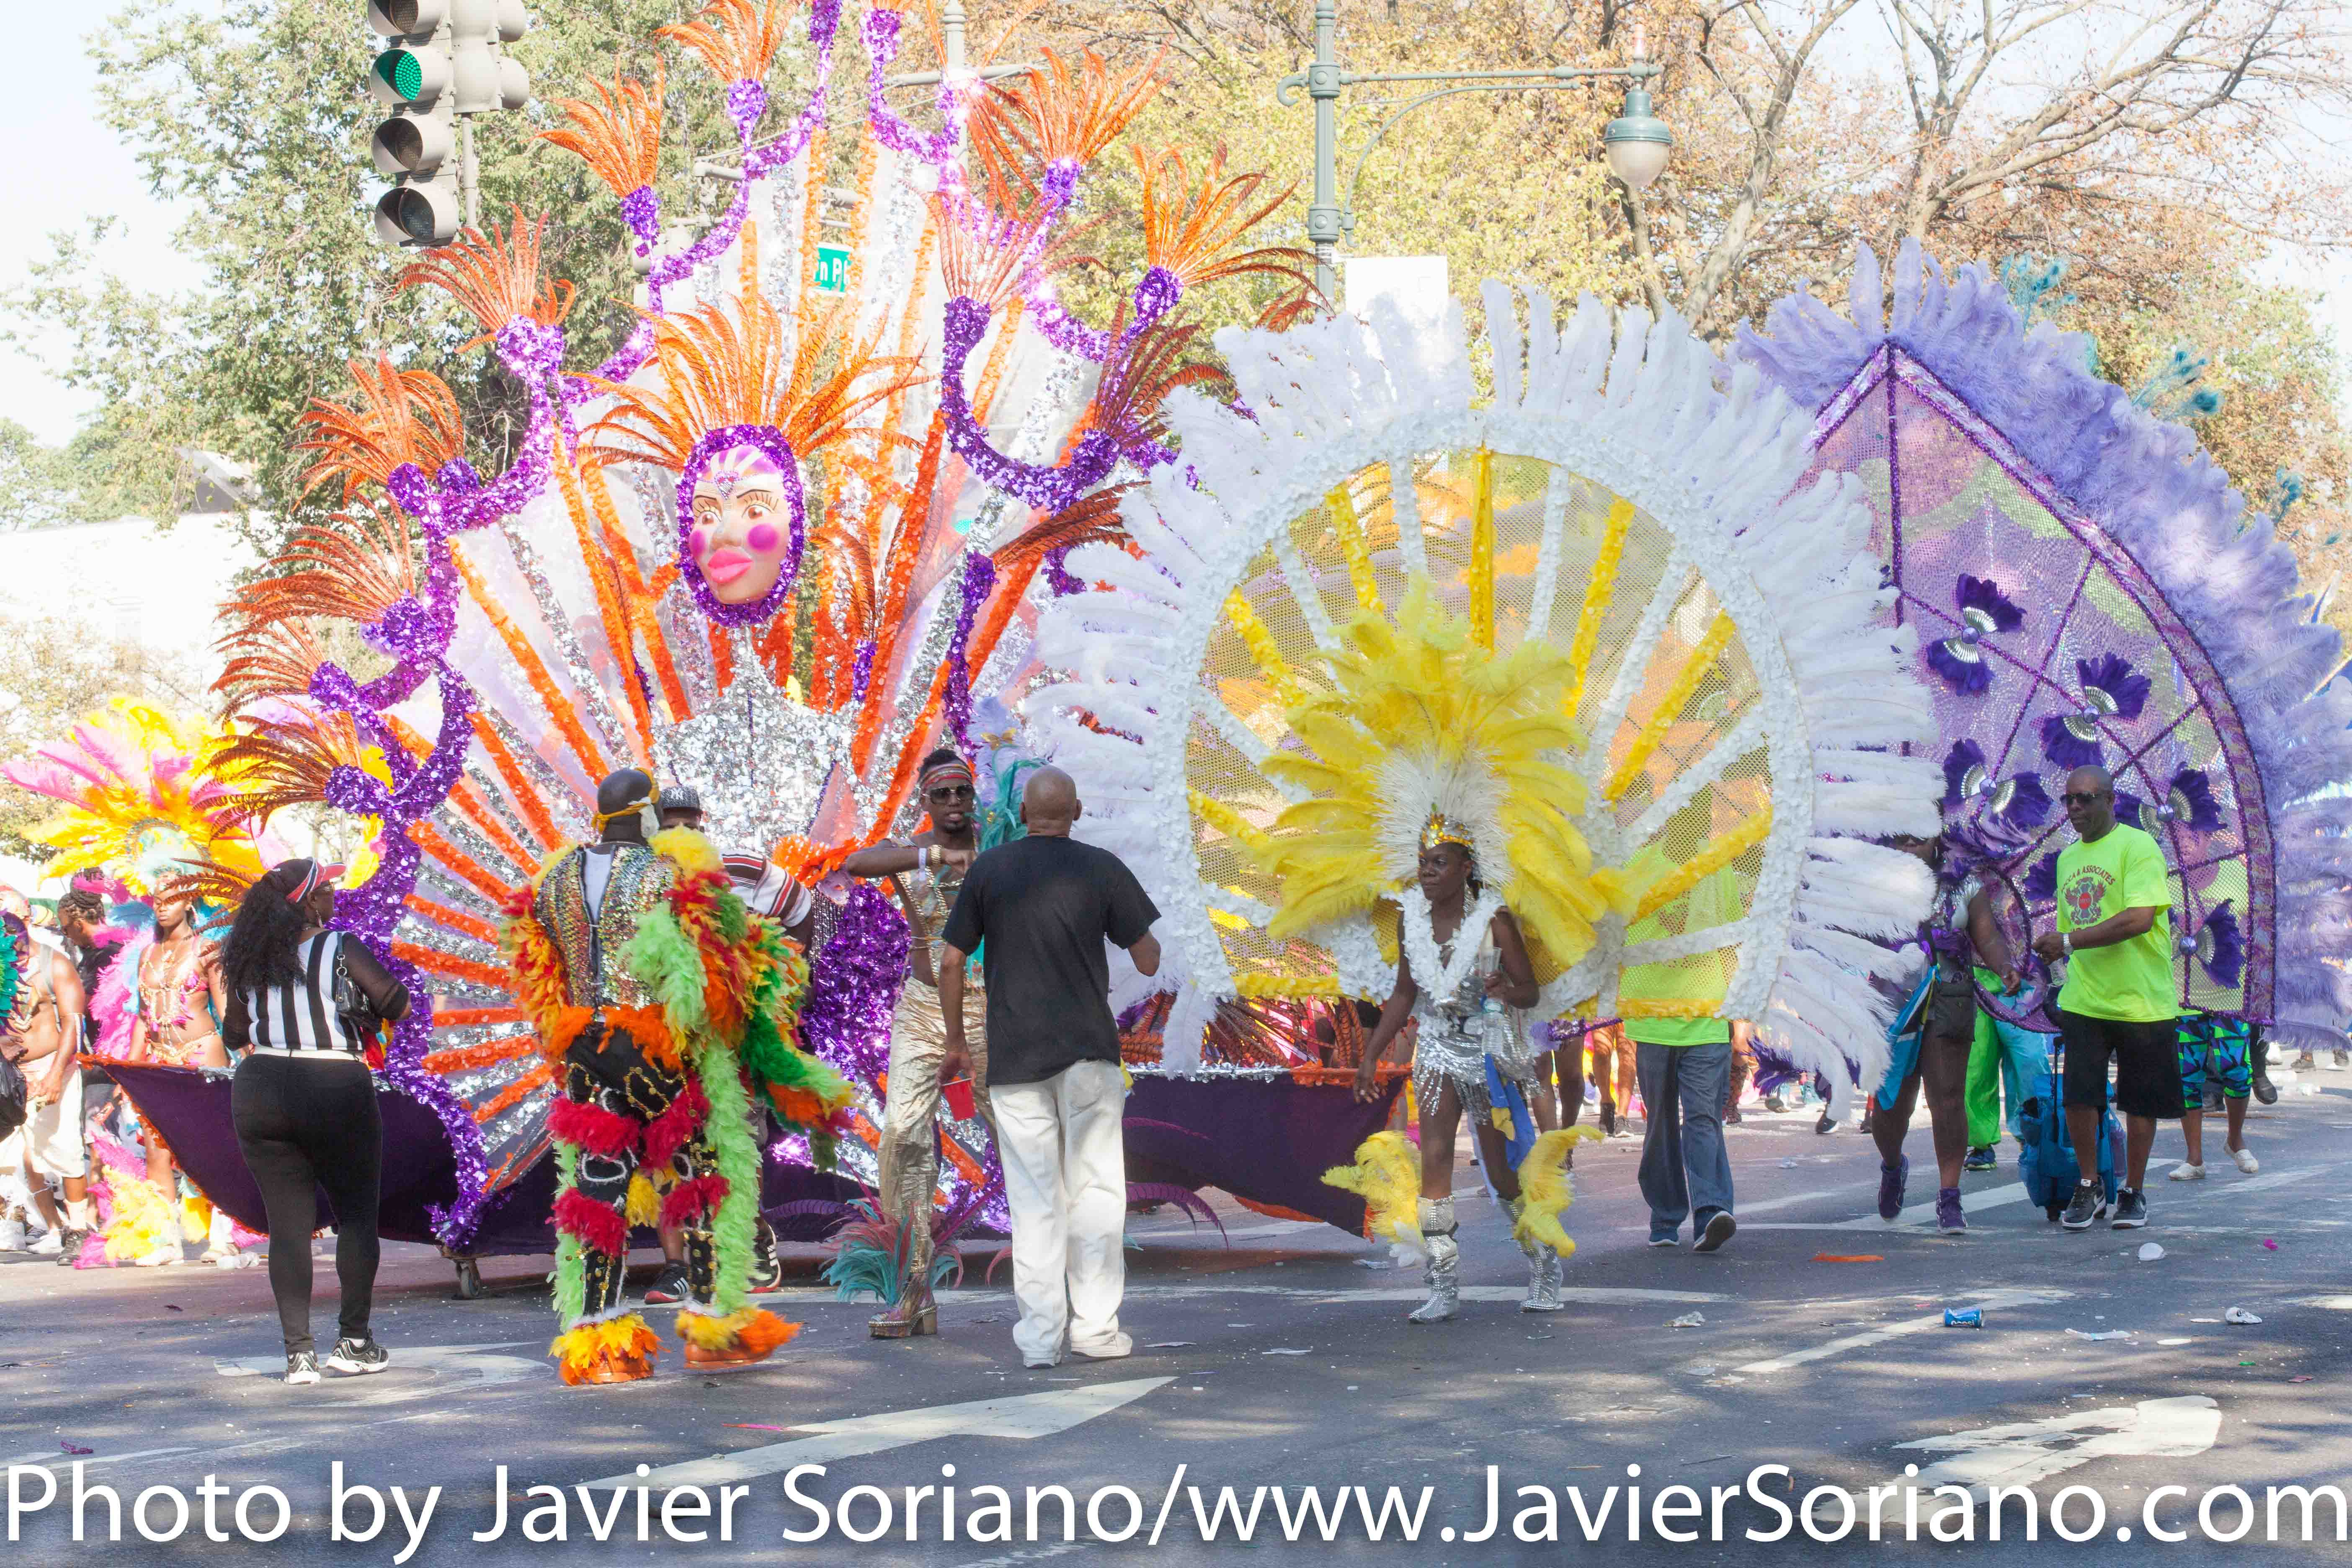 Monday, September 7, 2015. New York City – As always, the Annual Labor Day Parade was amazing. Photo by Javier Soriano/http://www.JavierSoriano.com/